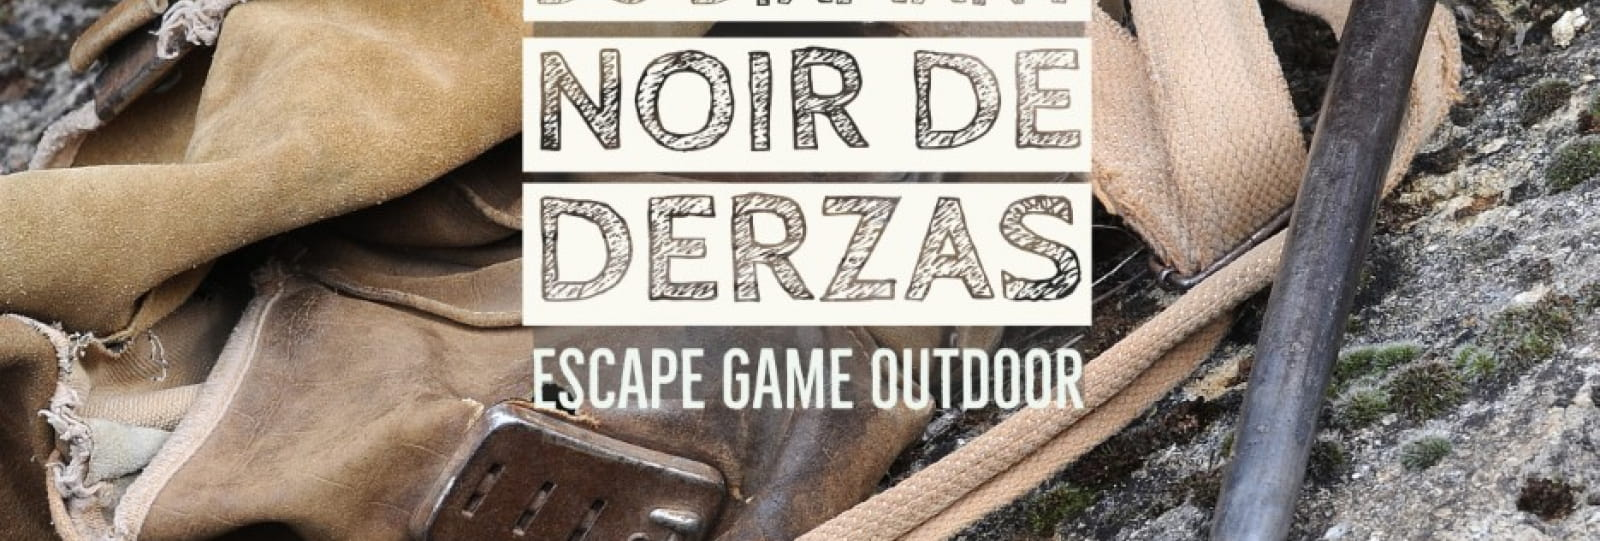 La Confrérie du Diamant Noir de Derzas - Escape Game